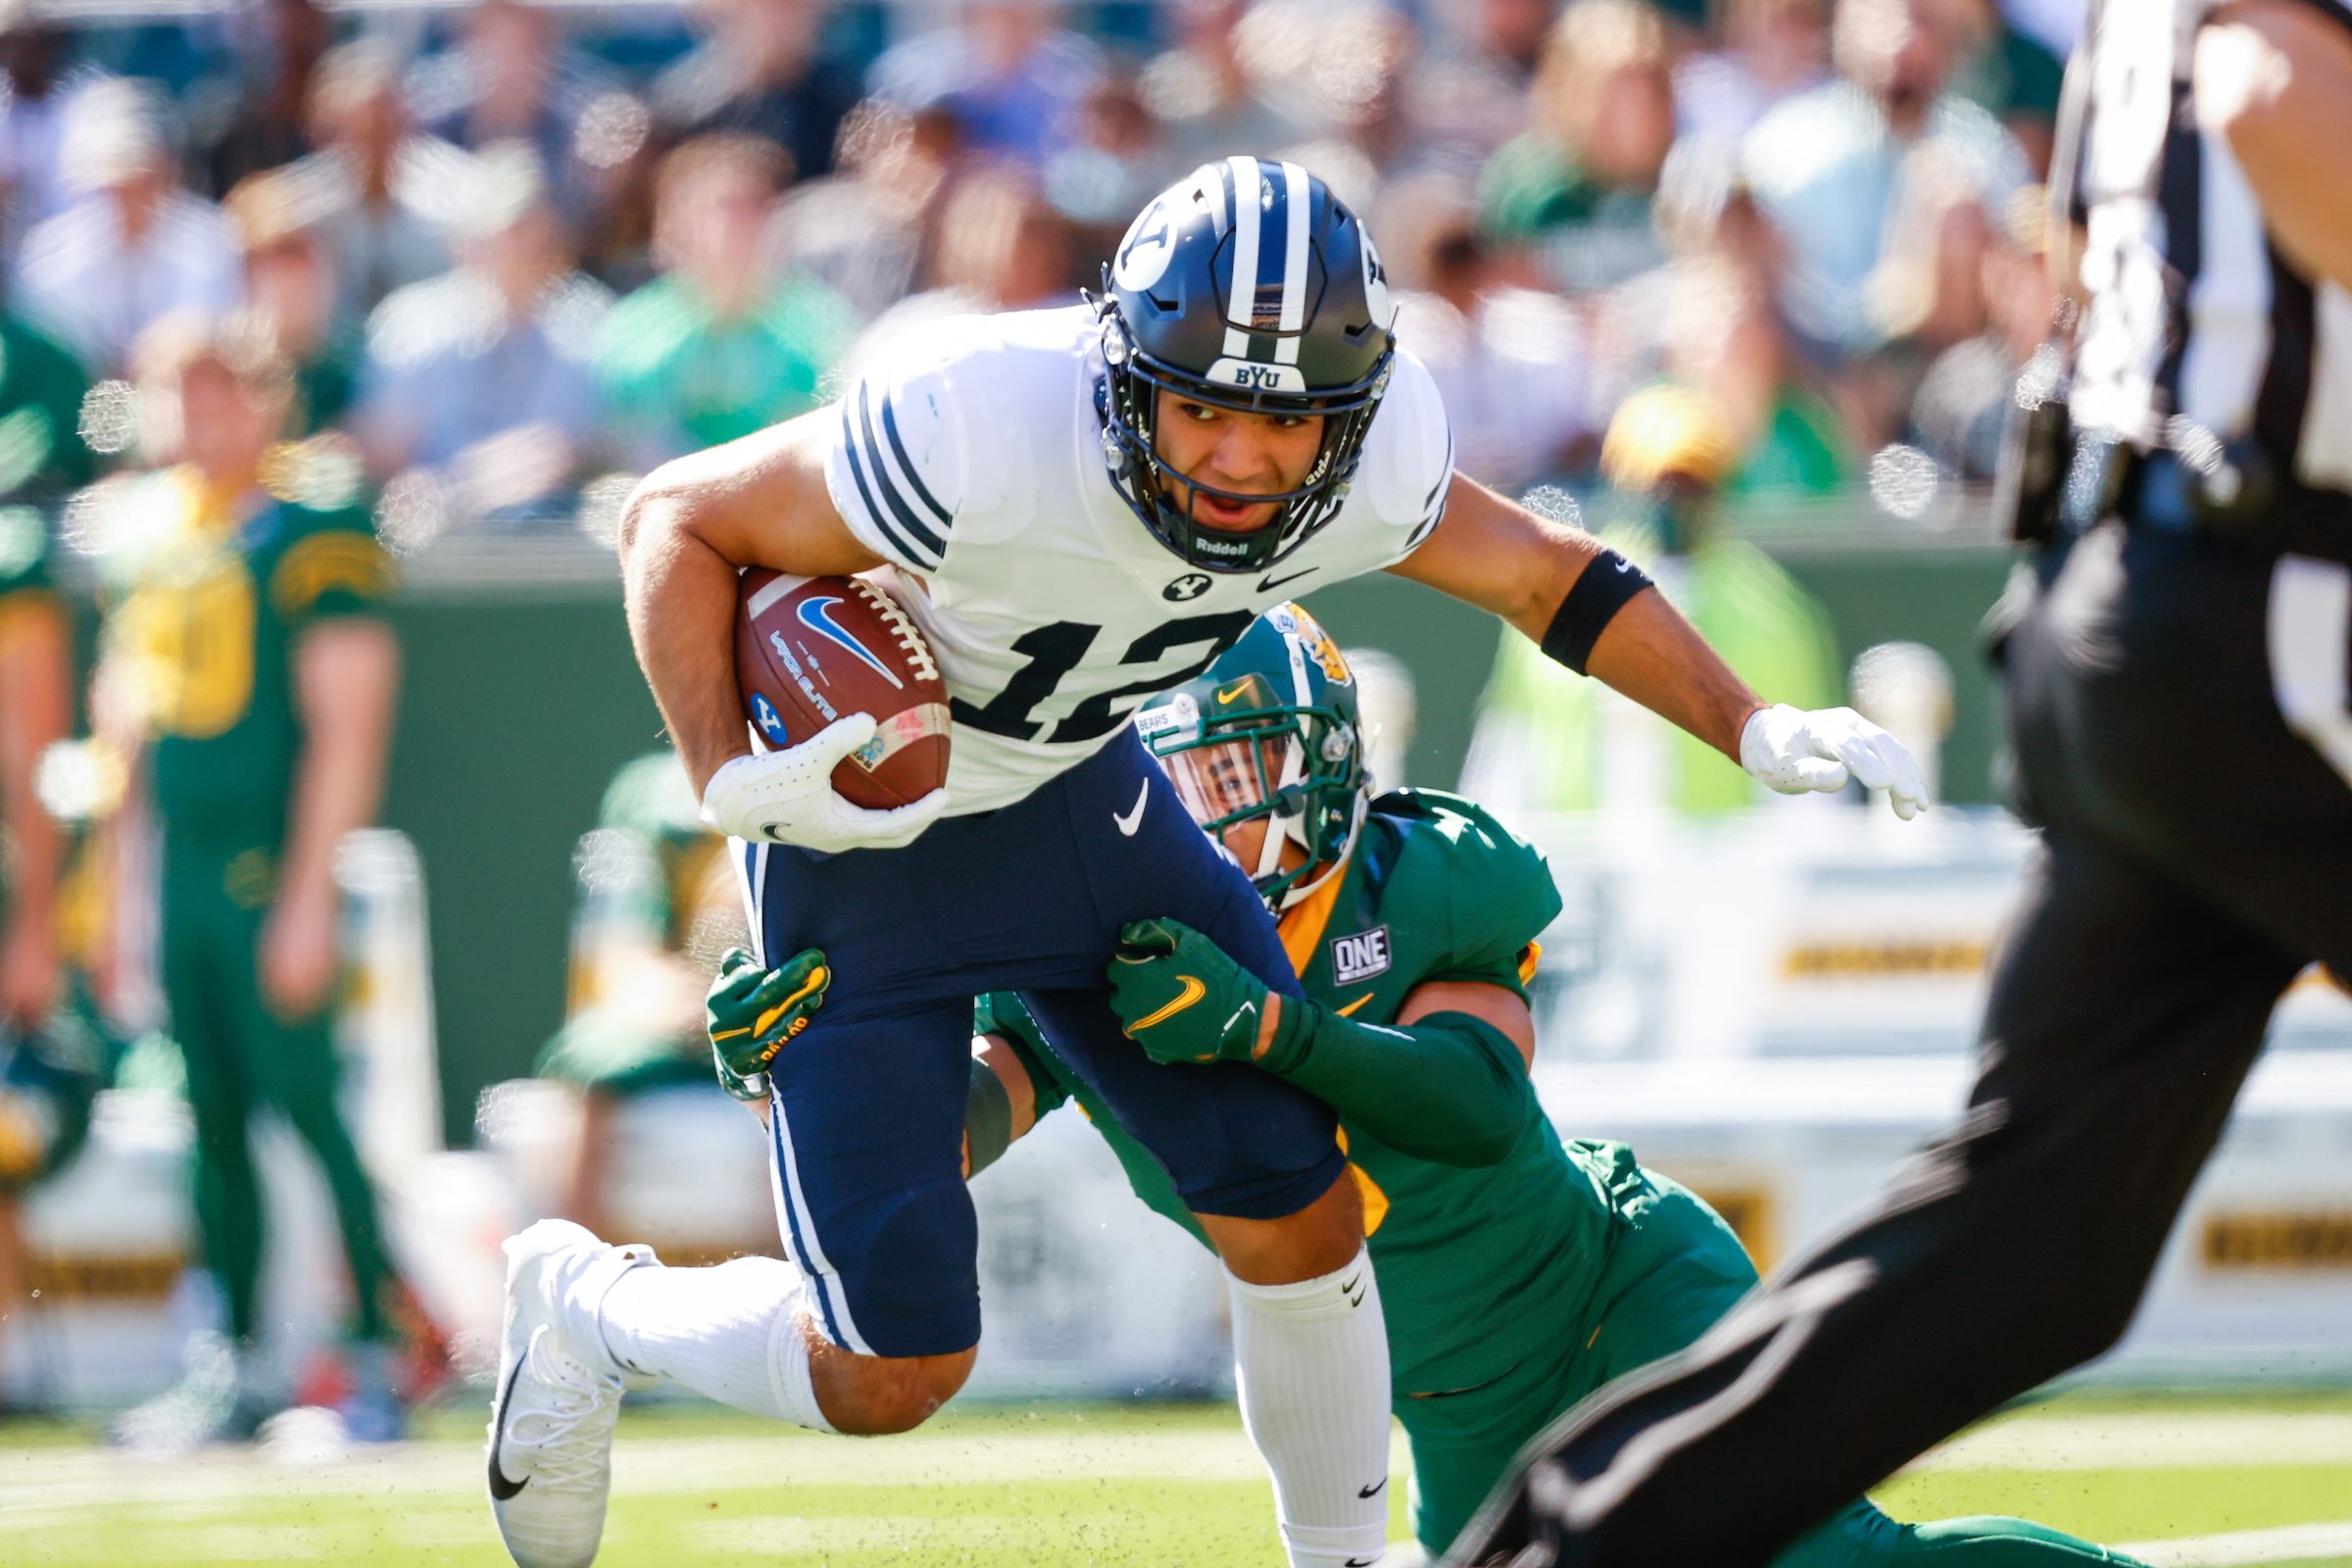 BYU wide receiver Puka Nacua runs after making a catch during the Cougars' road game against Baylor.